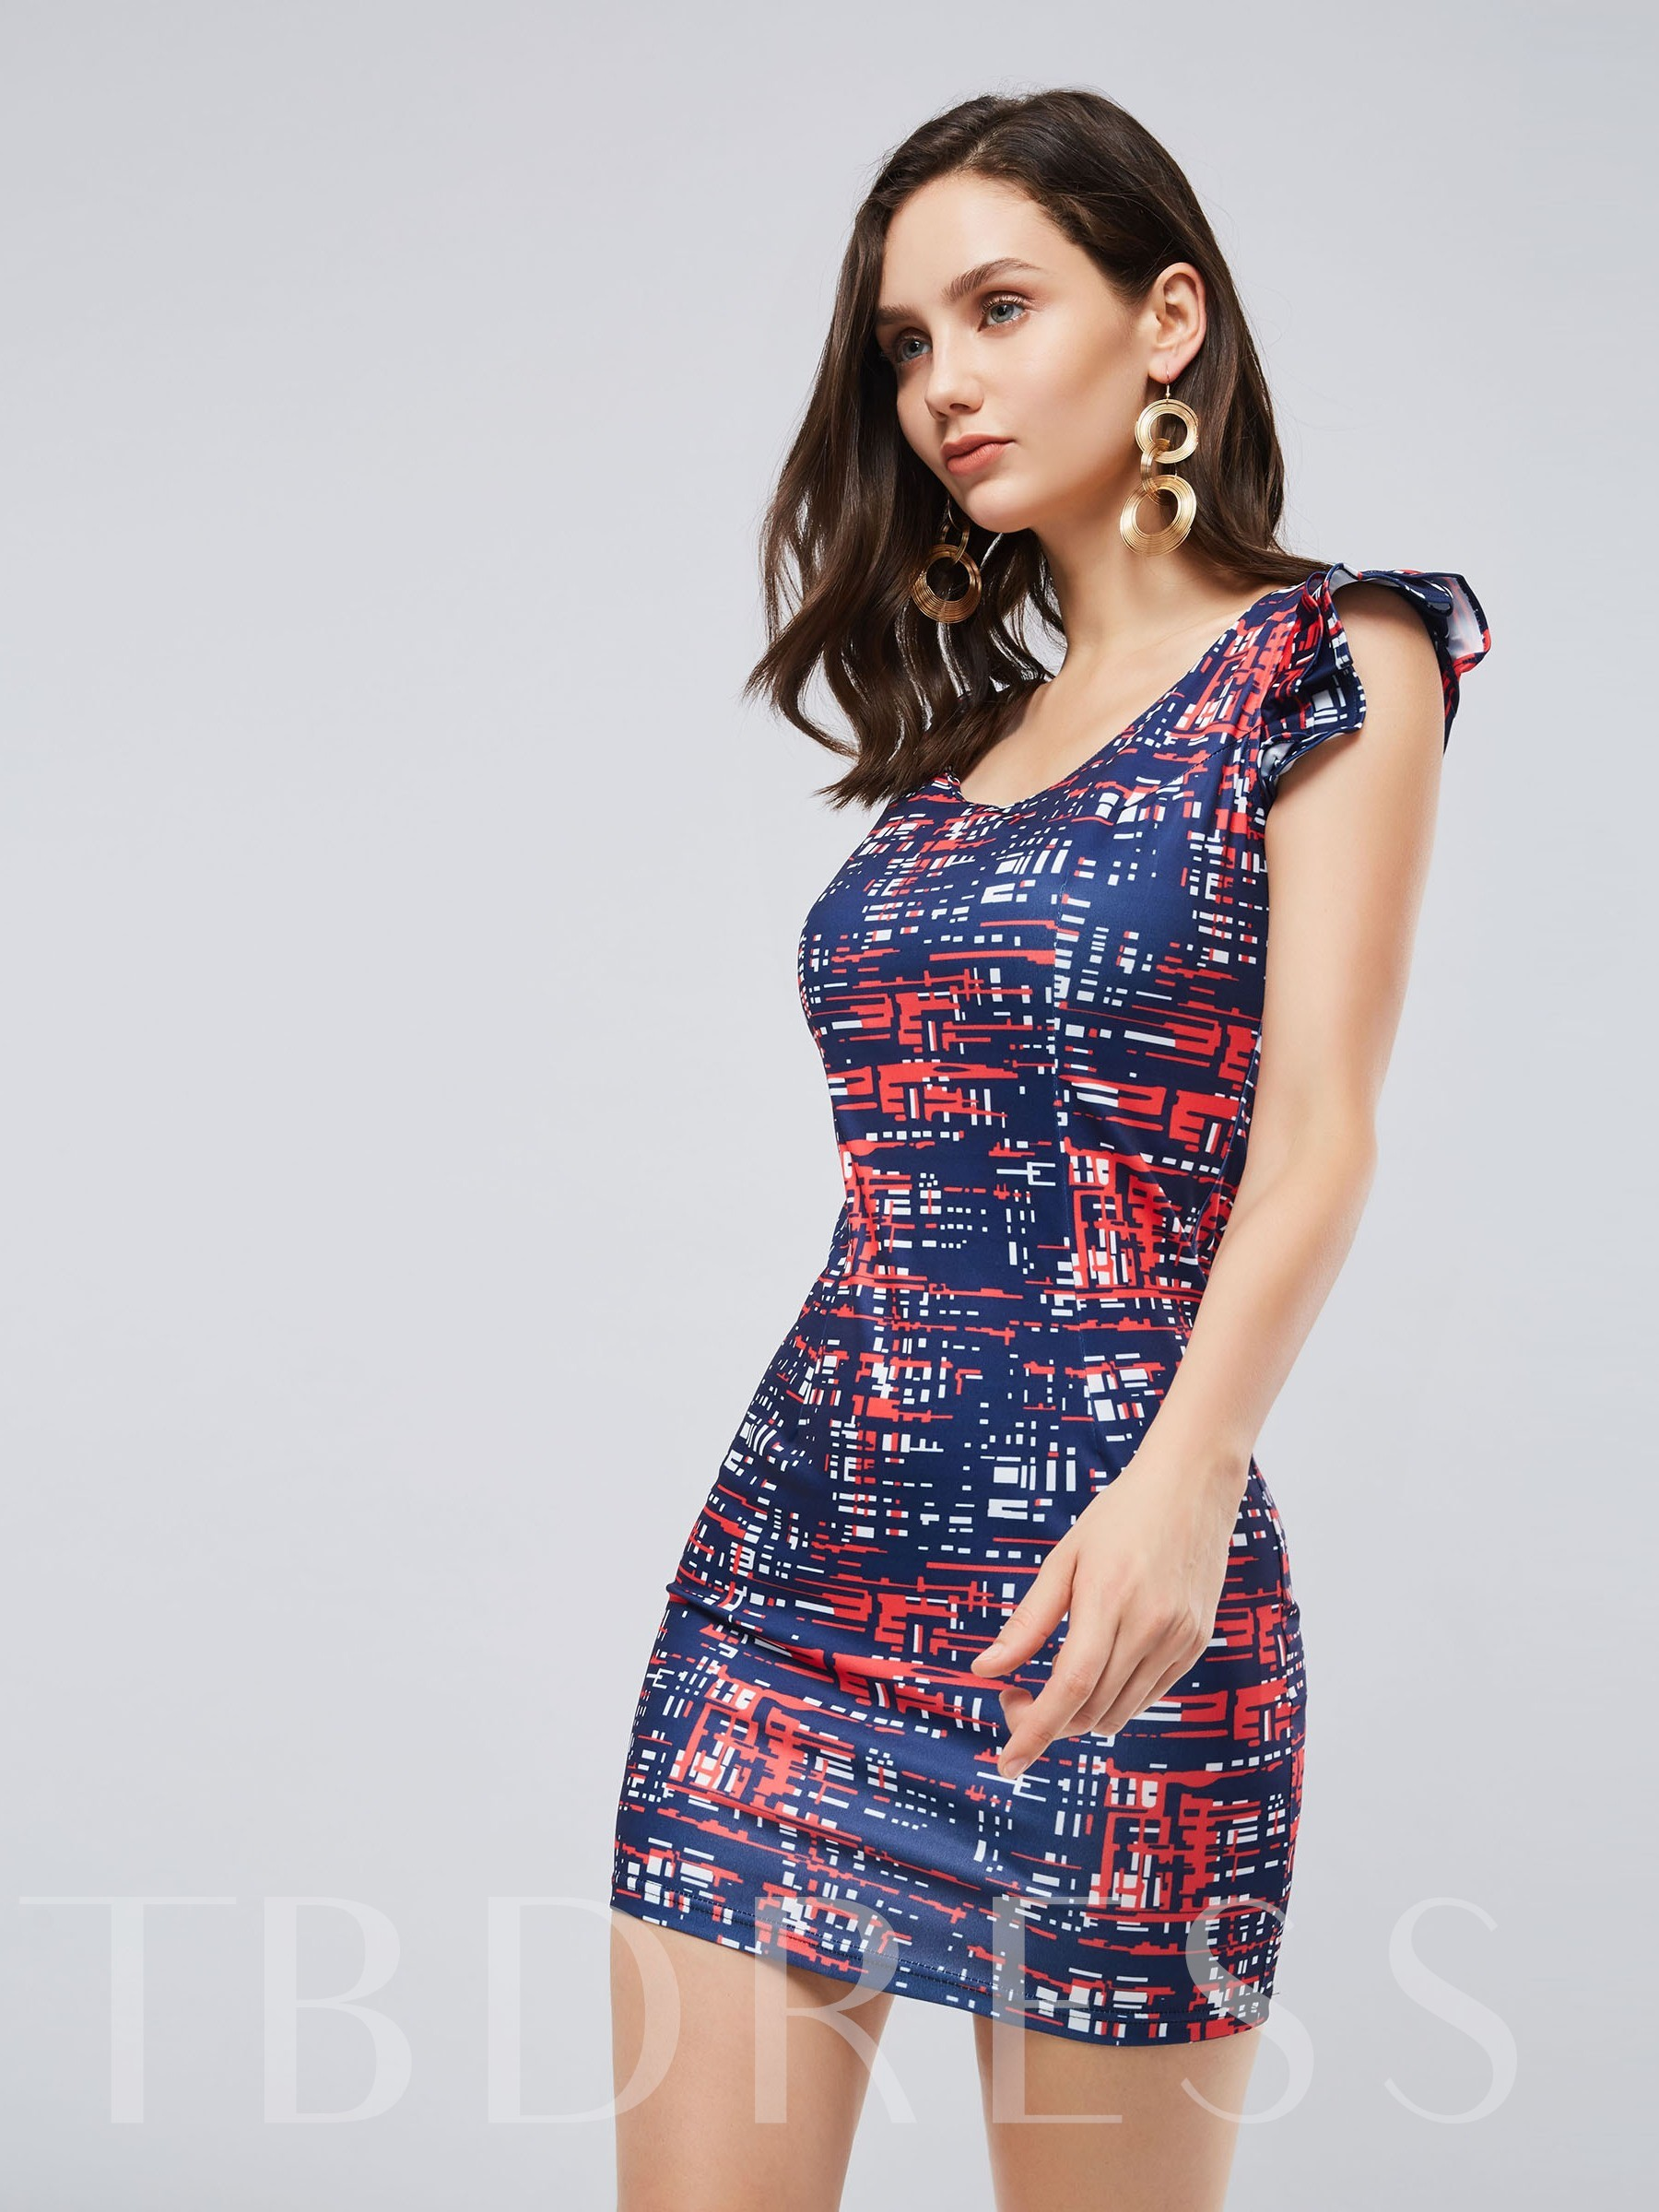 Buy Round Neck Short Sleeve Prints Bodycon Dress, Spring,Summer,Fall, 13410835 for $13.97 in TBDress store